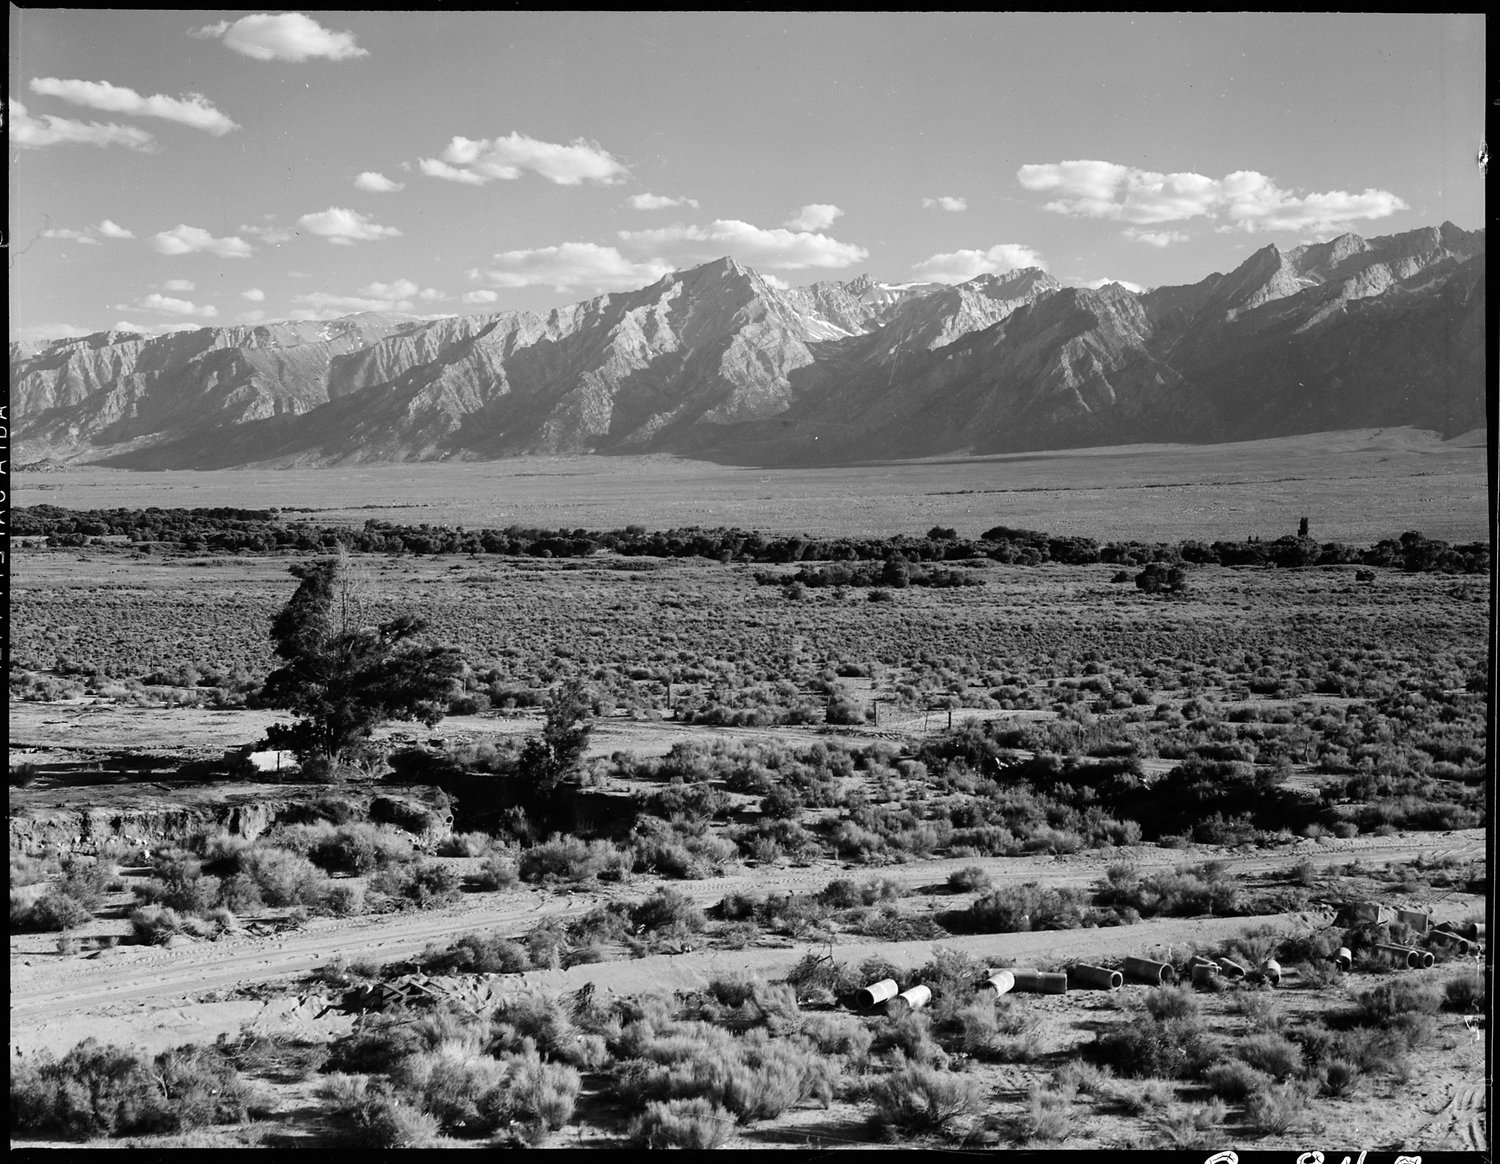 Manzanar Relocation Center, Manzanar, California. A view of surrounding country flanked by beautiful mountains at this War Relocation Authority center.